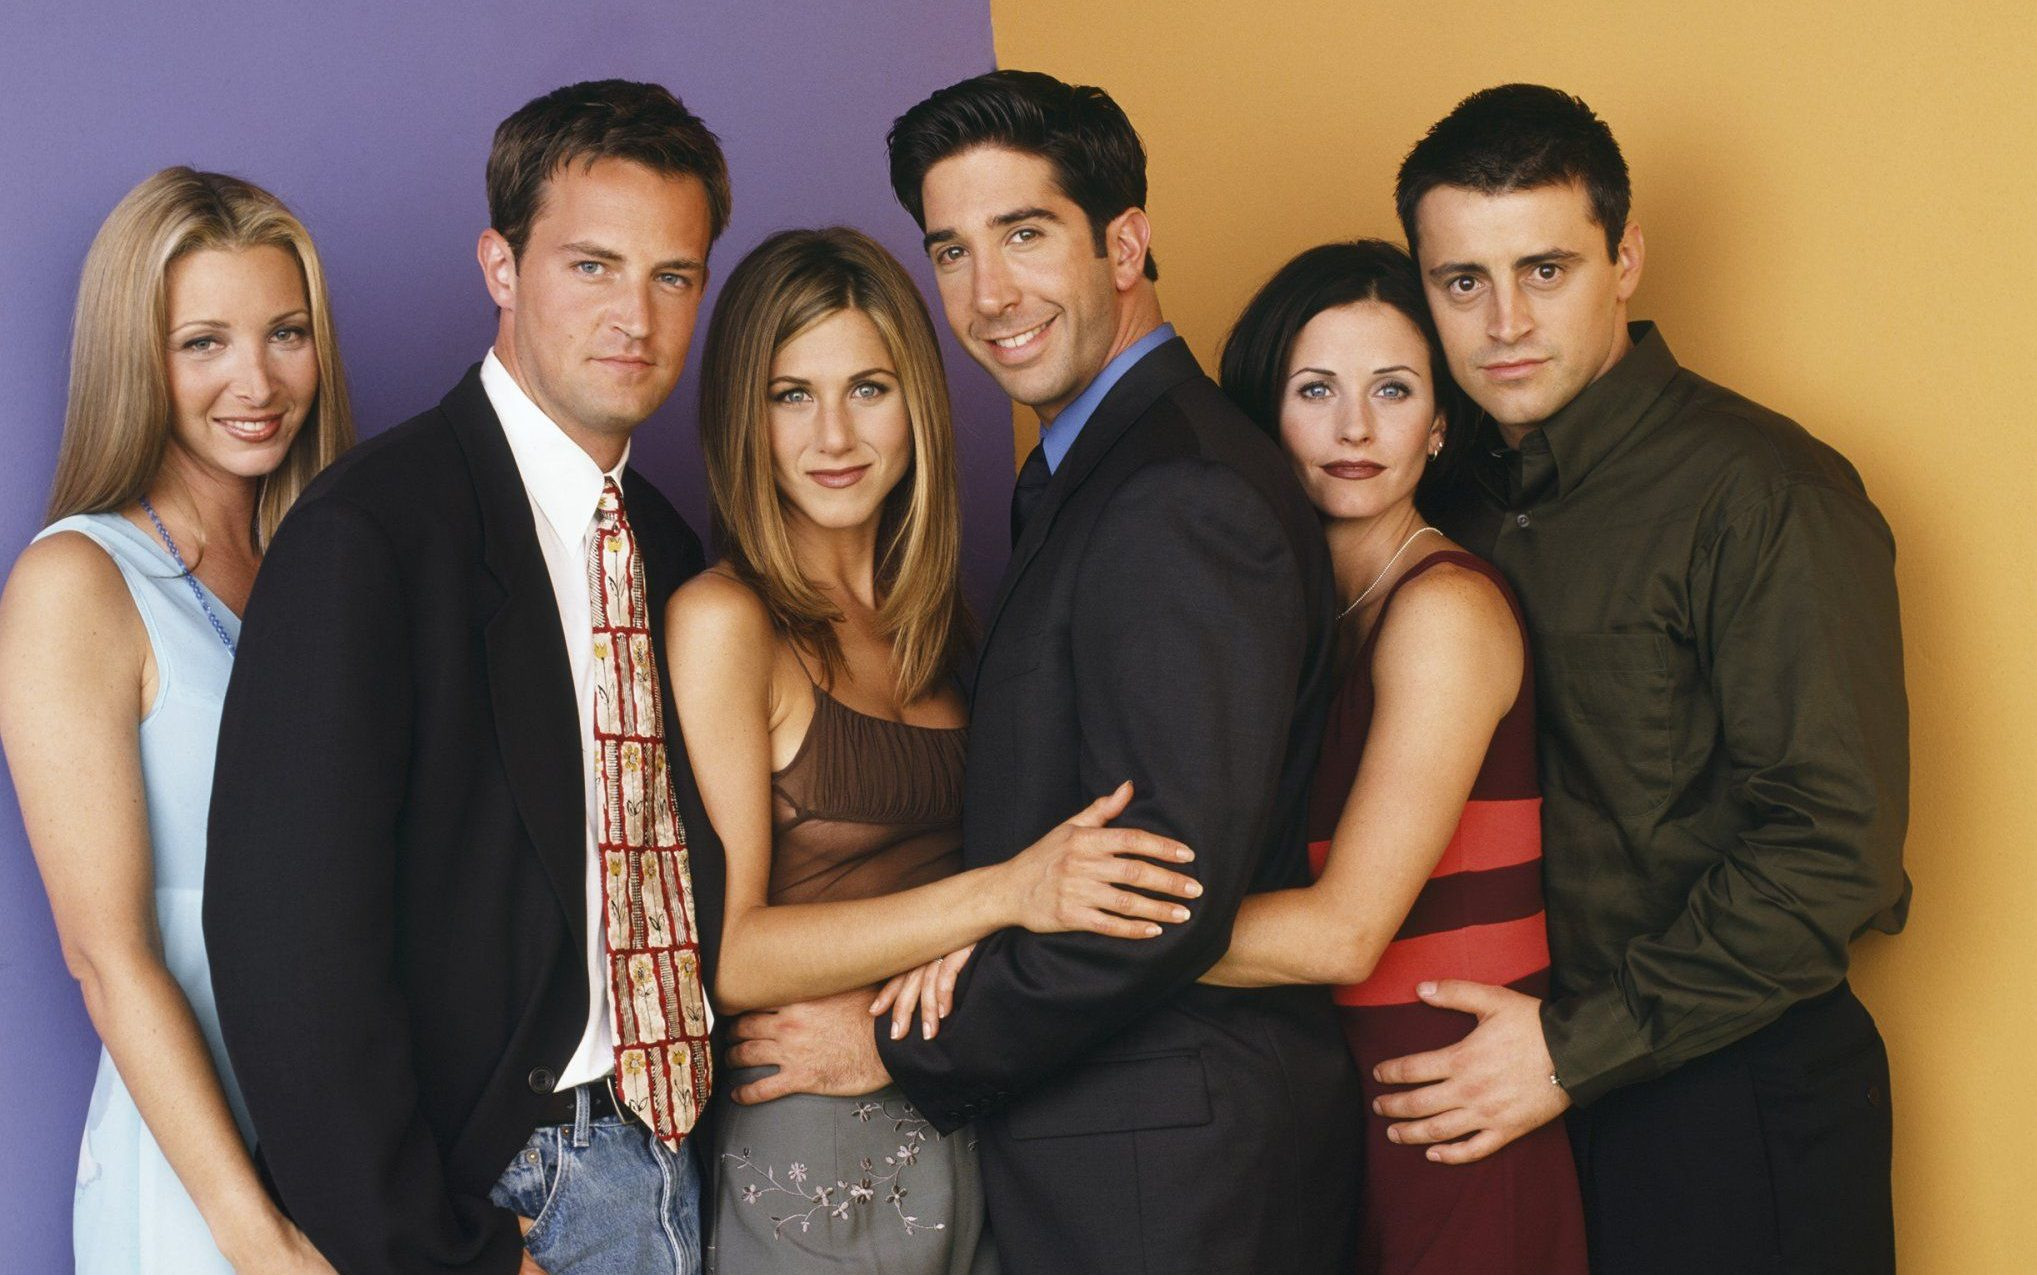 FRIENDS -- Pictured: (l-r) Lisa Kudrow as Phoebe Buffay, Matthew Perry as Chandler Bing, Jennifer Aniston as Rachel Green, David Schwimmer as Ross Geller, Courteney Cox as Monica Geller, Matt LeBlanc as Joey Tribbiani, (Photo by Jon Ragel/NBC/NBCU Photo Bank via Getty Images)